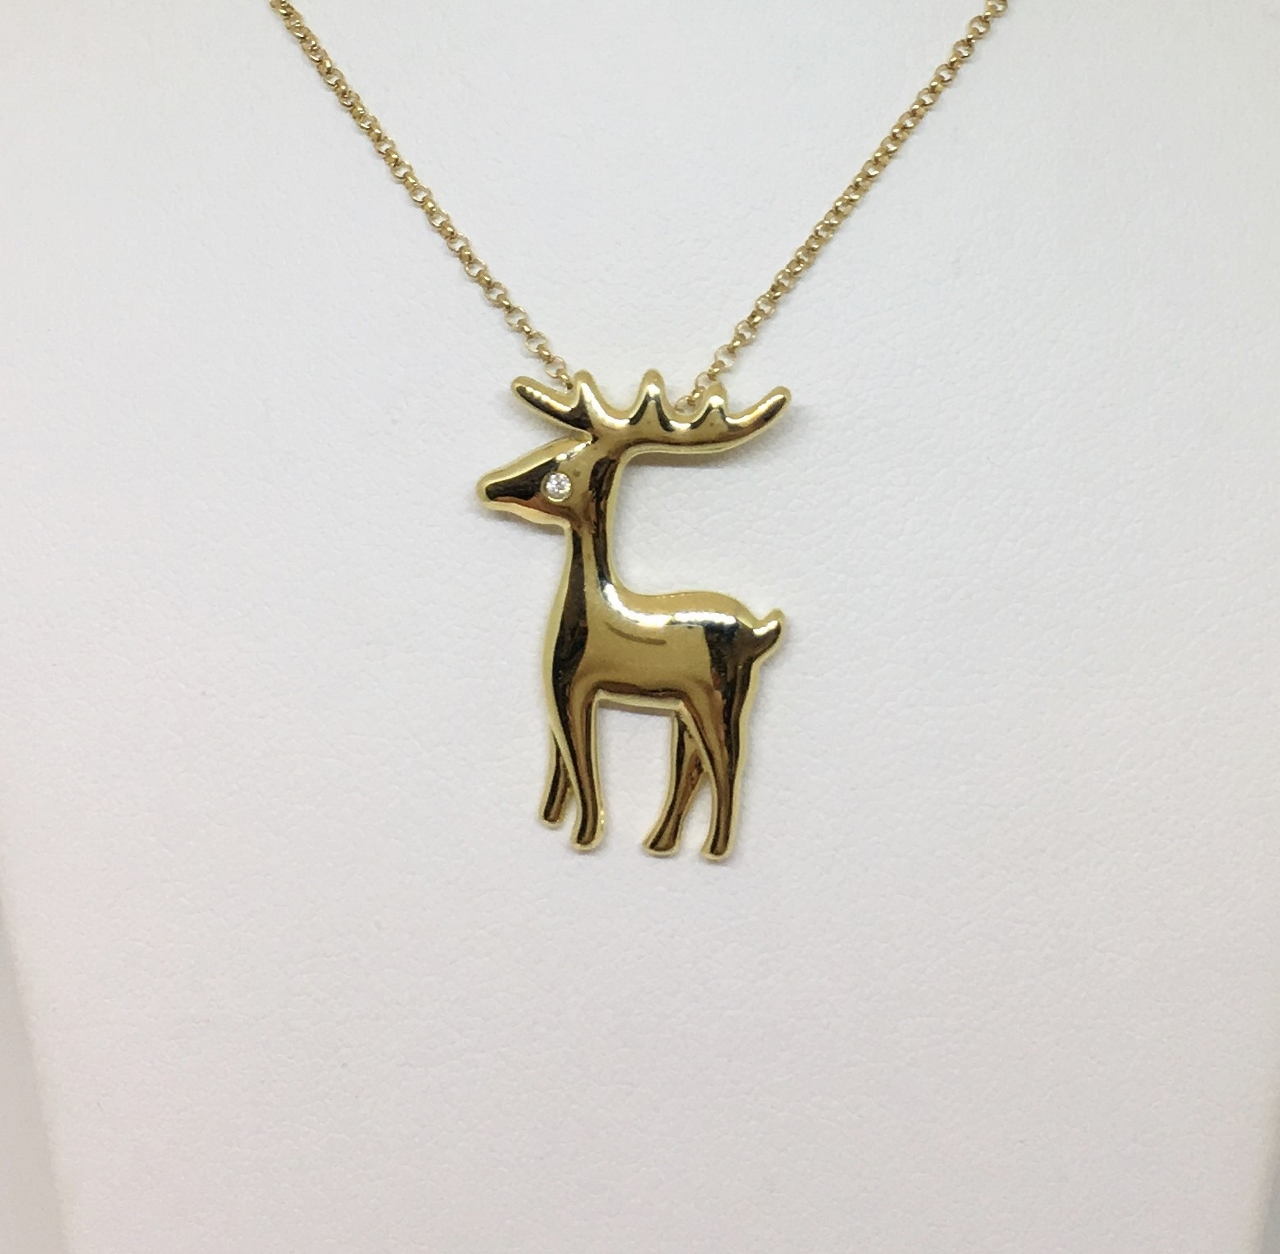 18K Yellow Gold Deer Design Pendant With Chain